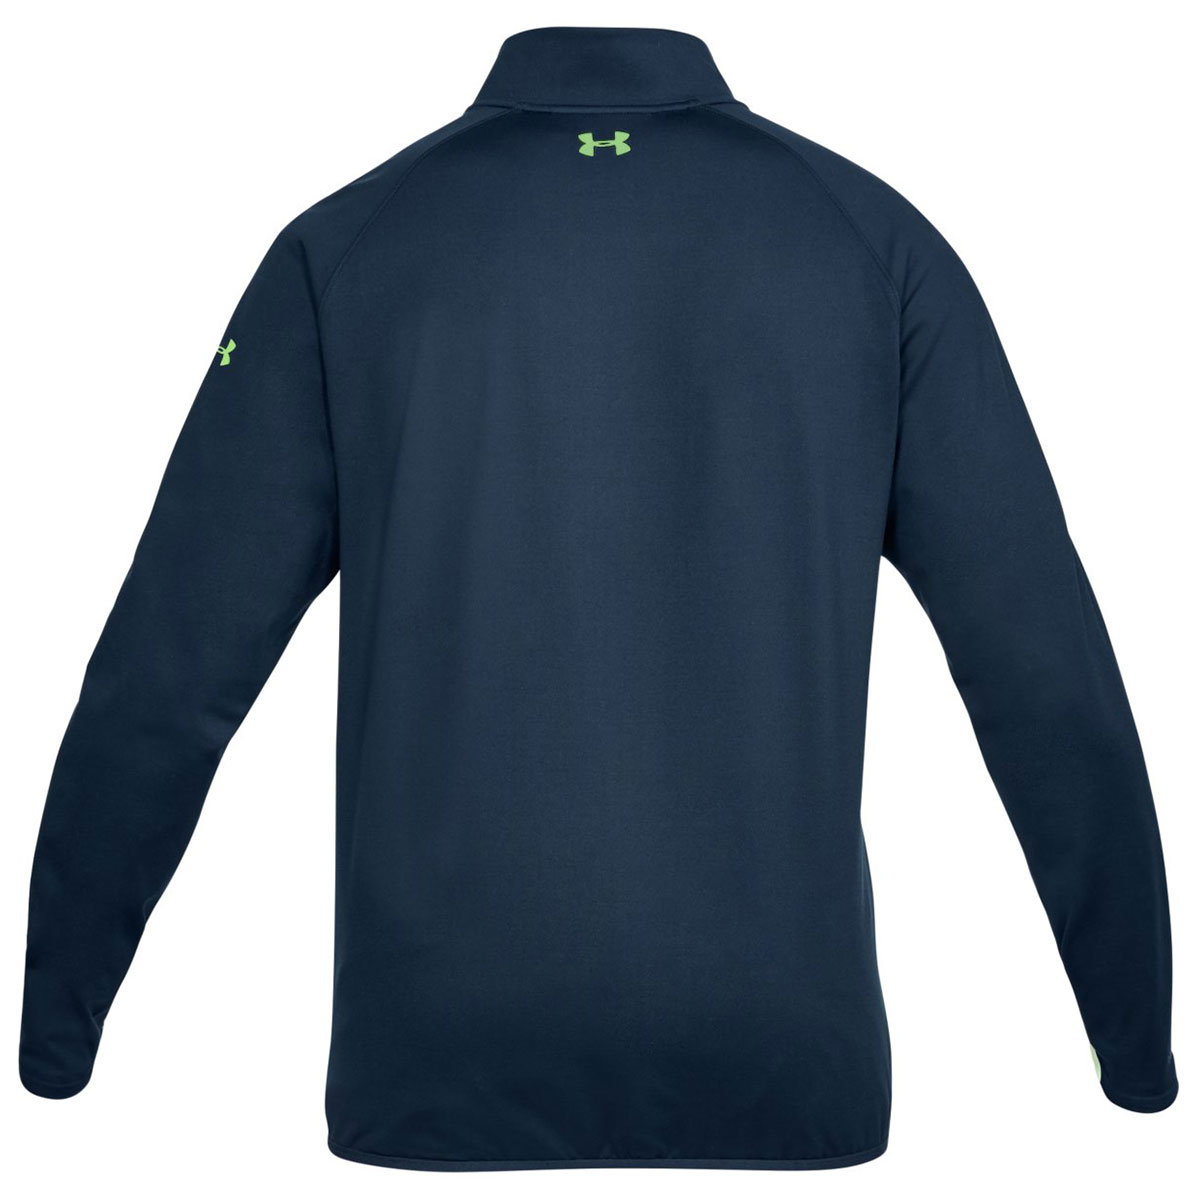 Under-Armour-Mens-Golf-1-4-Zip-Moisture-Control-Crestable-Sweater-45-OFF-RRP thumbnail 5